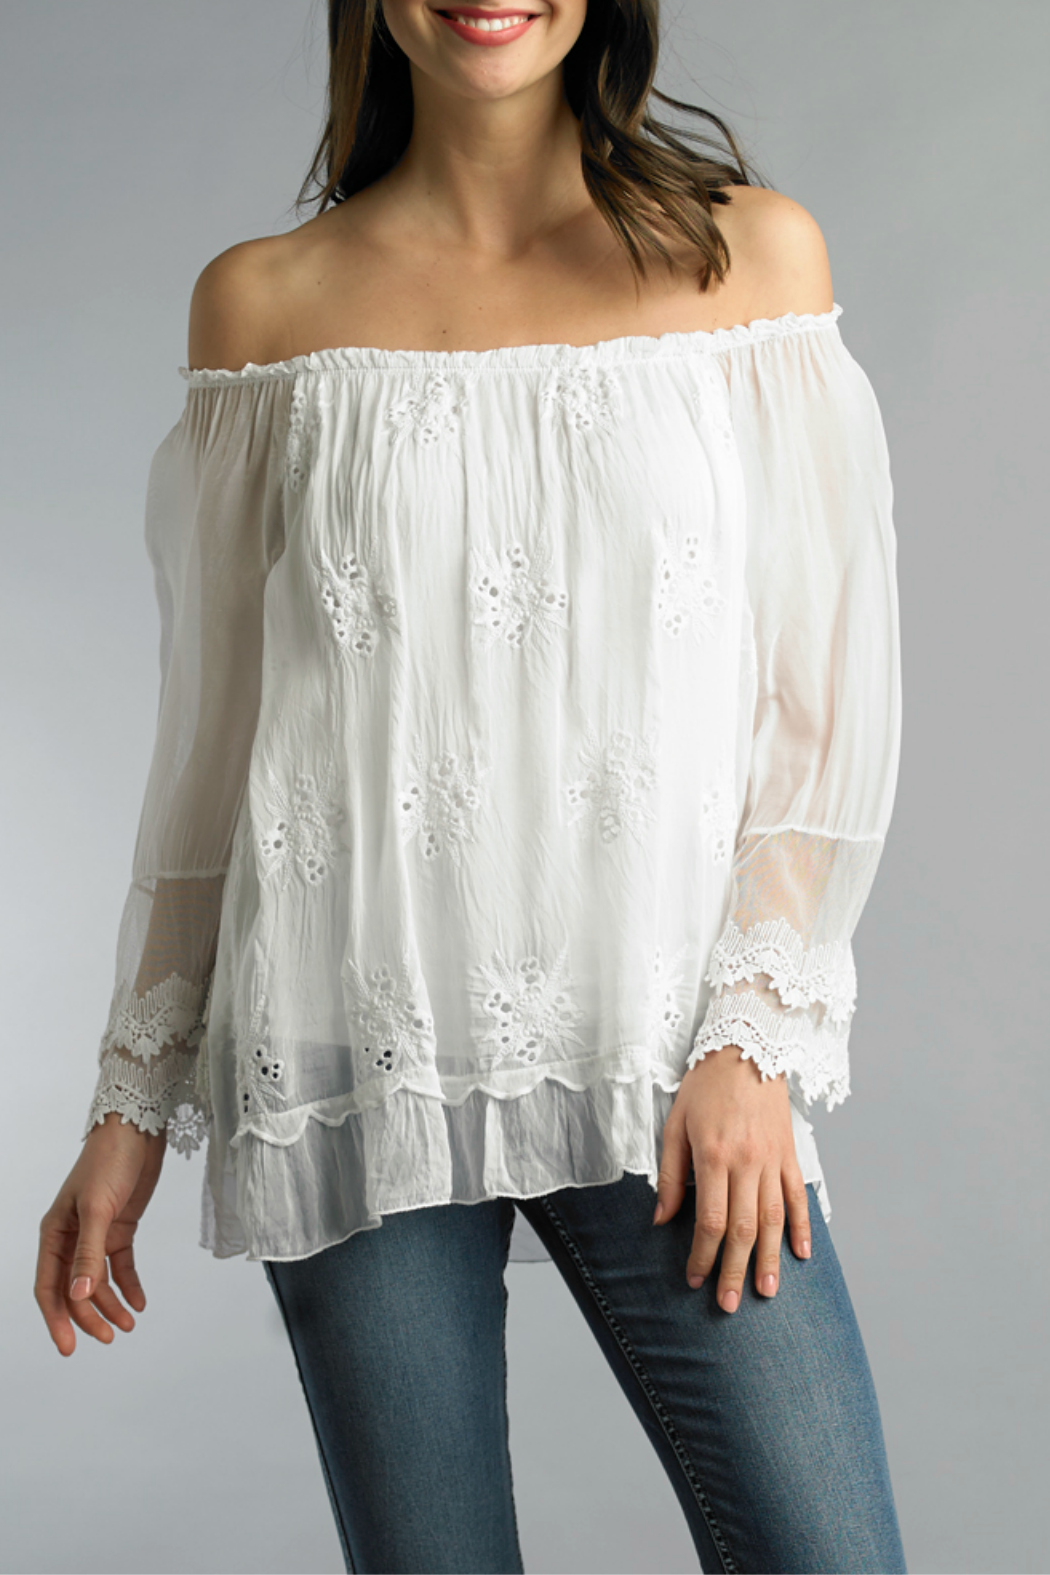 Tempo Paris Embroidered Blouse - Main Image